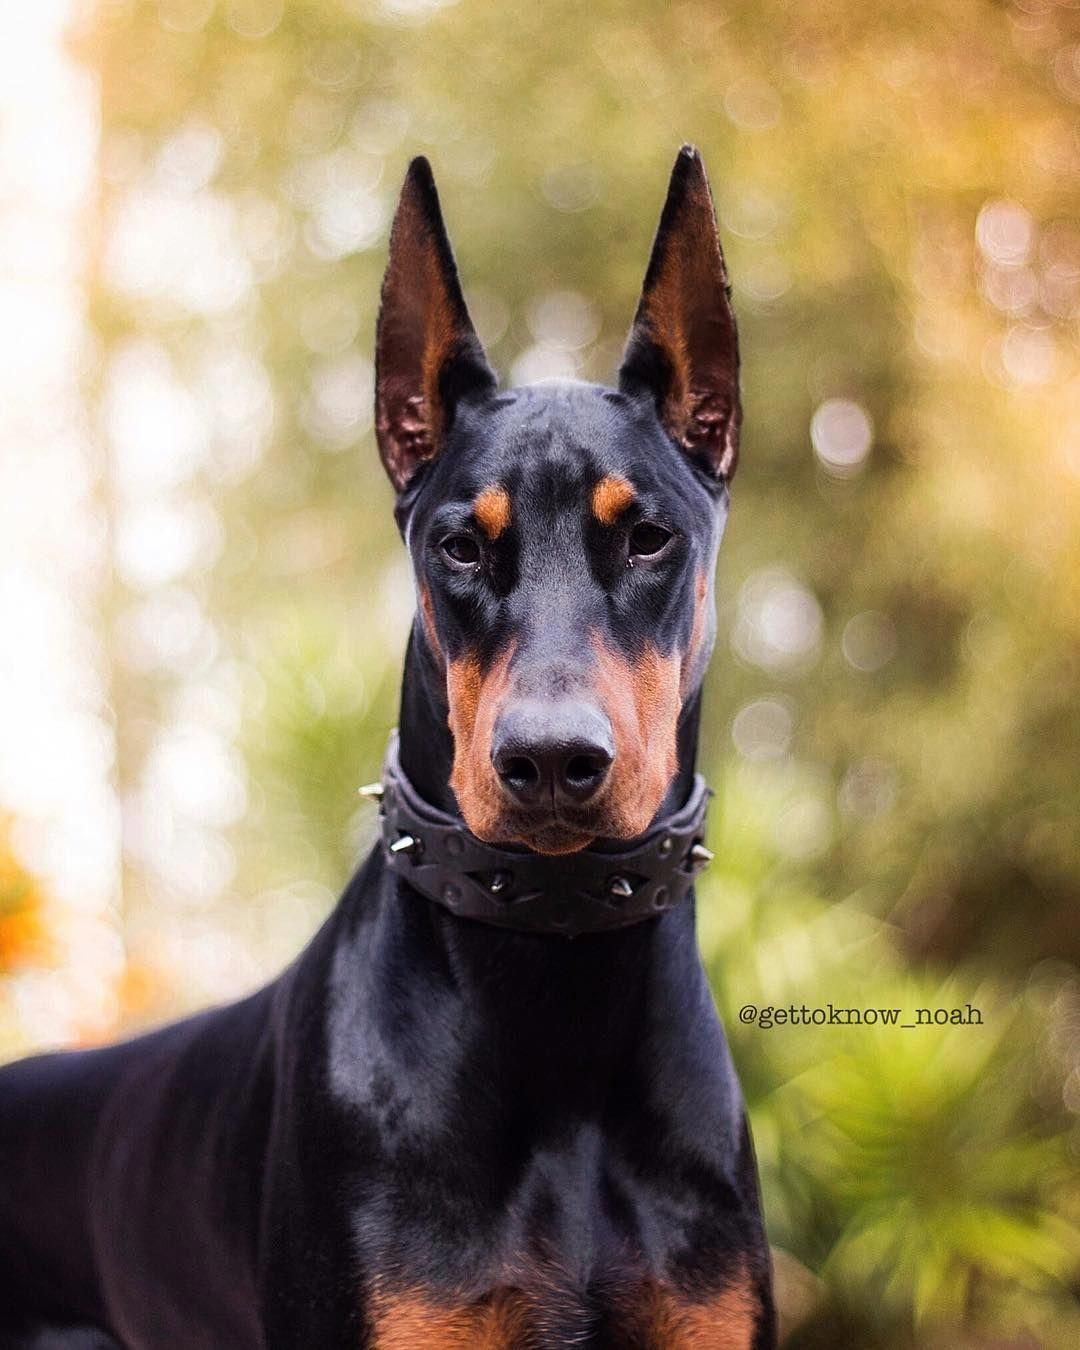 Find Out More On The Fearless Doberman Dogs Personality